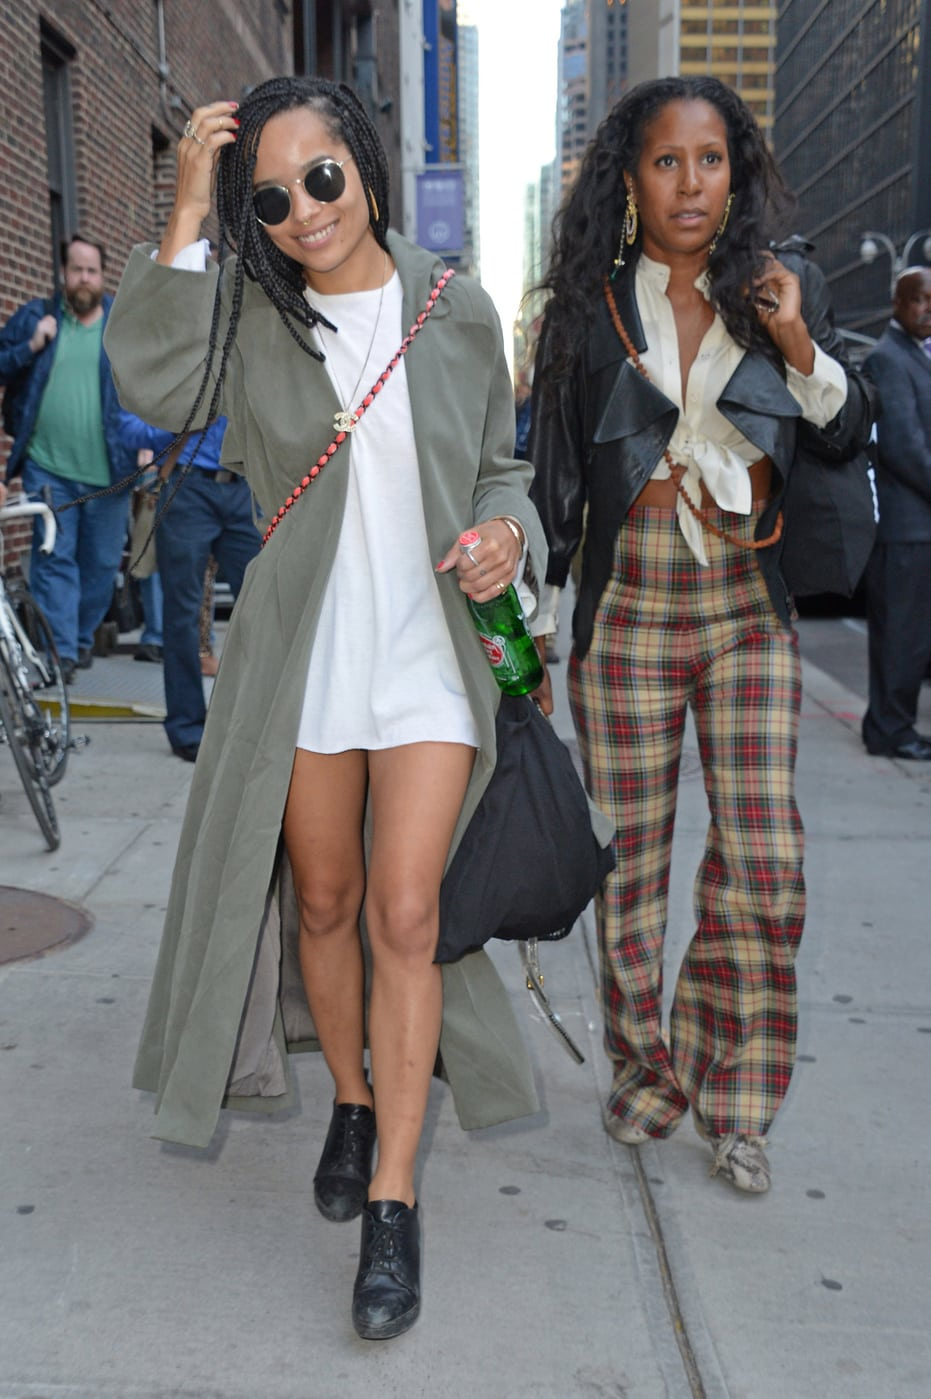 Celebrity fashion: Zoe Kravitz wearing a white tee shirt dress, an oversized army green trench coat, a Chanel crossbody bag, and black oxford heels